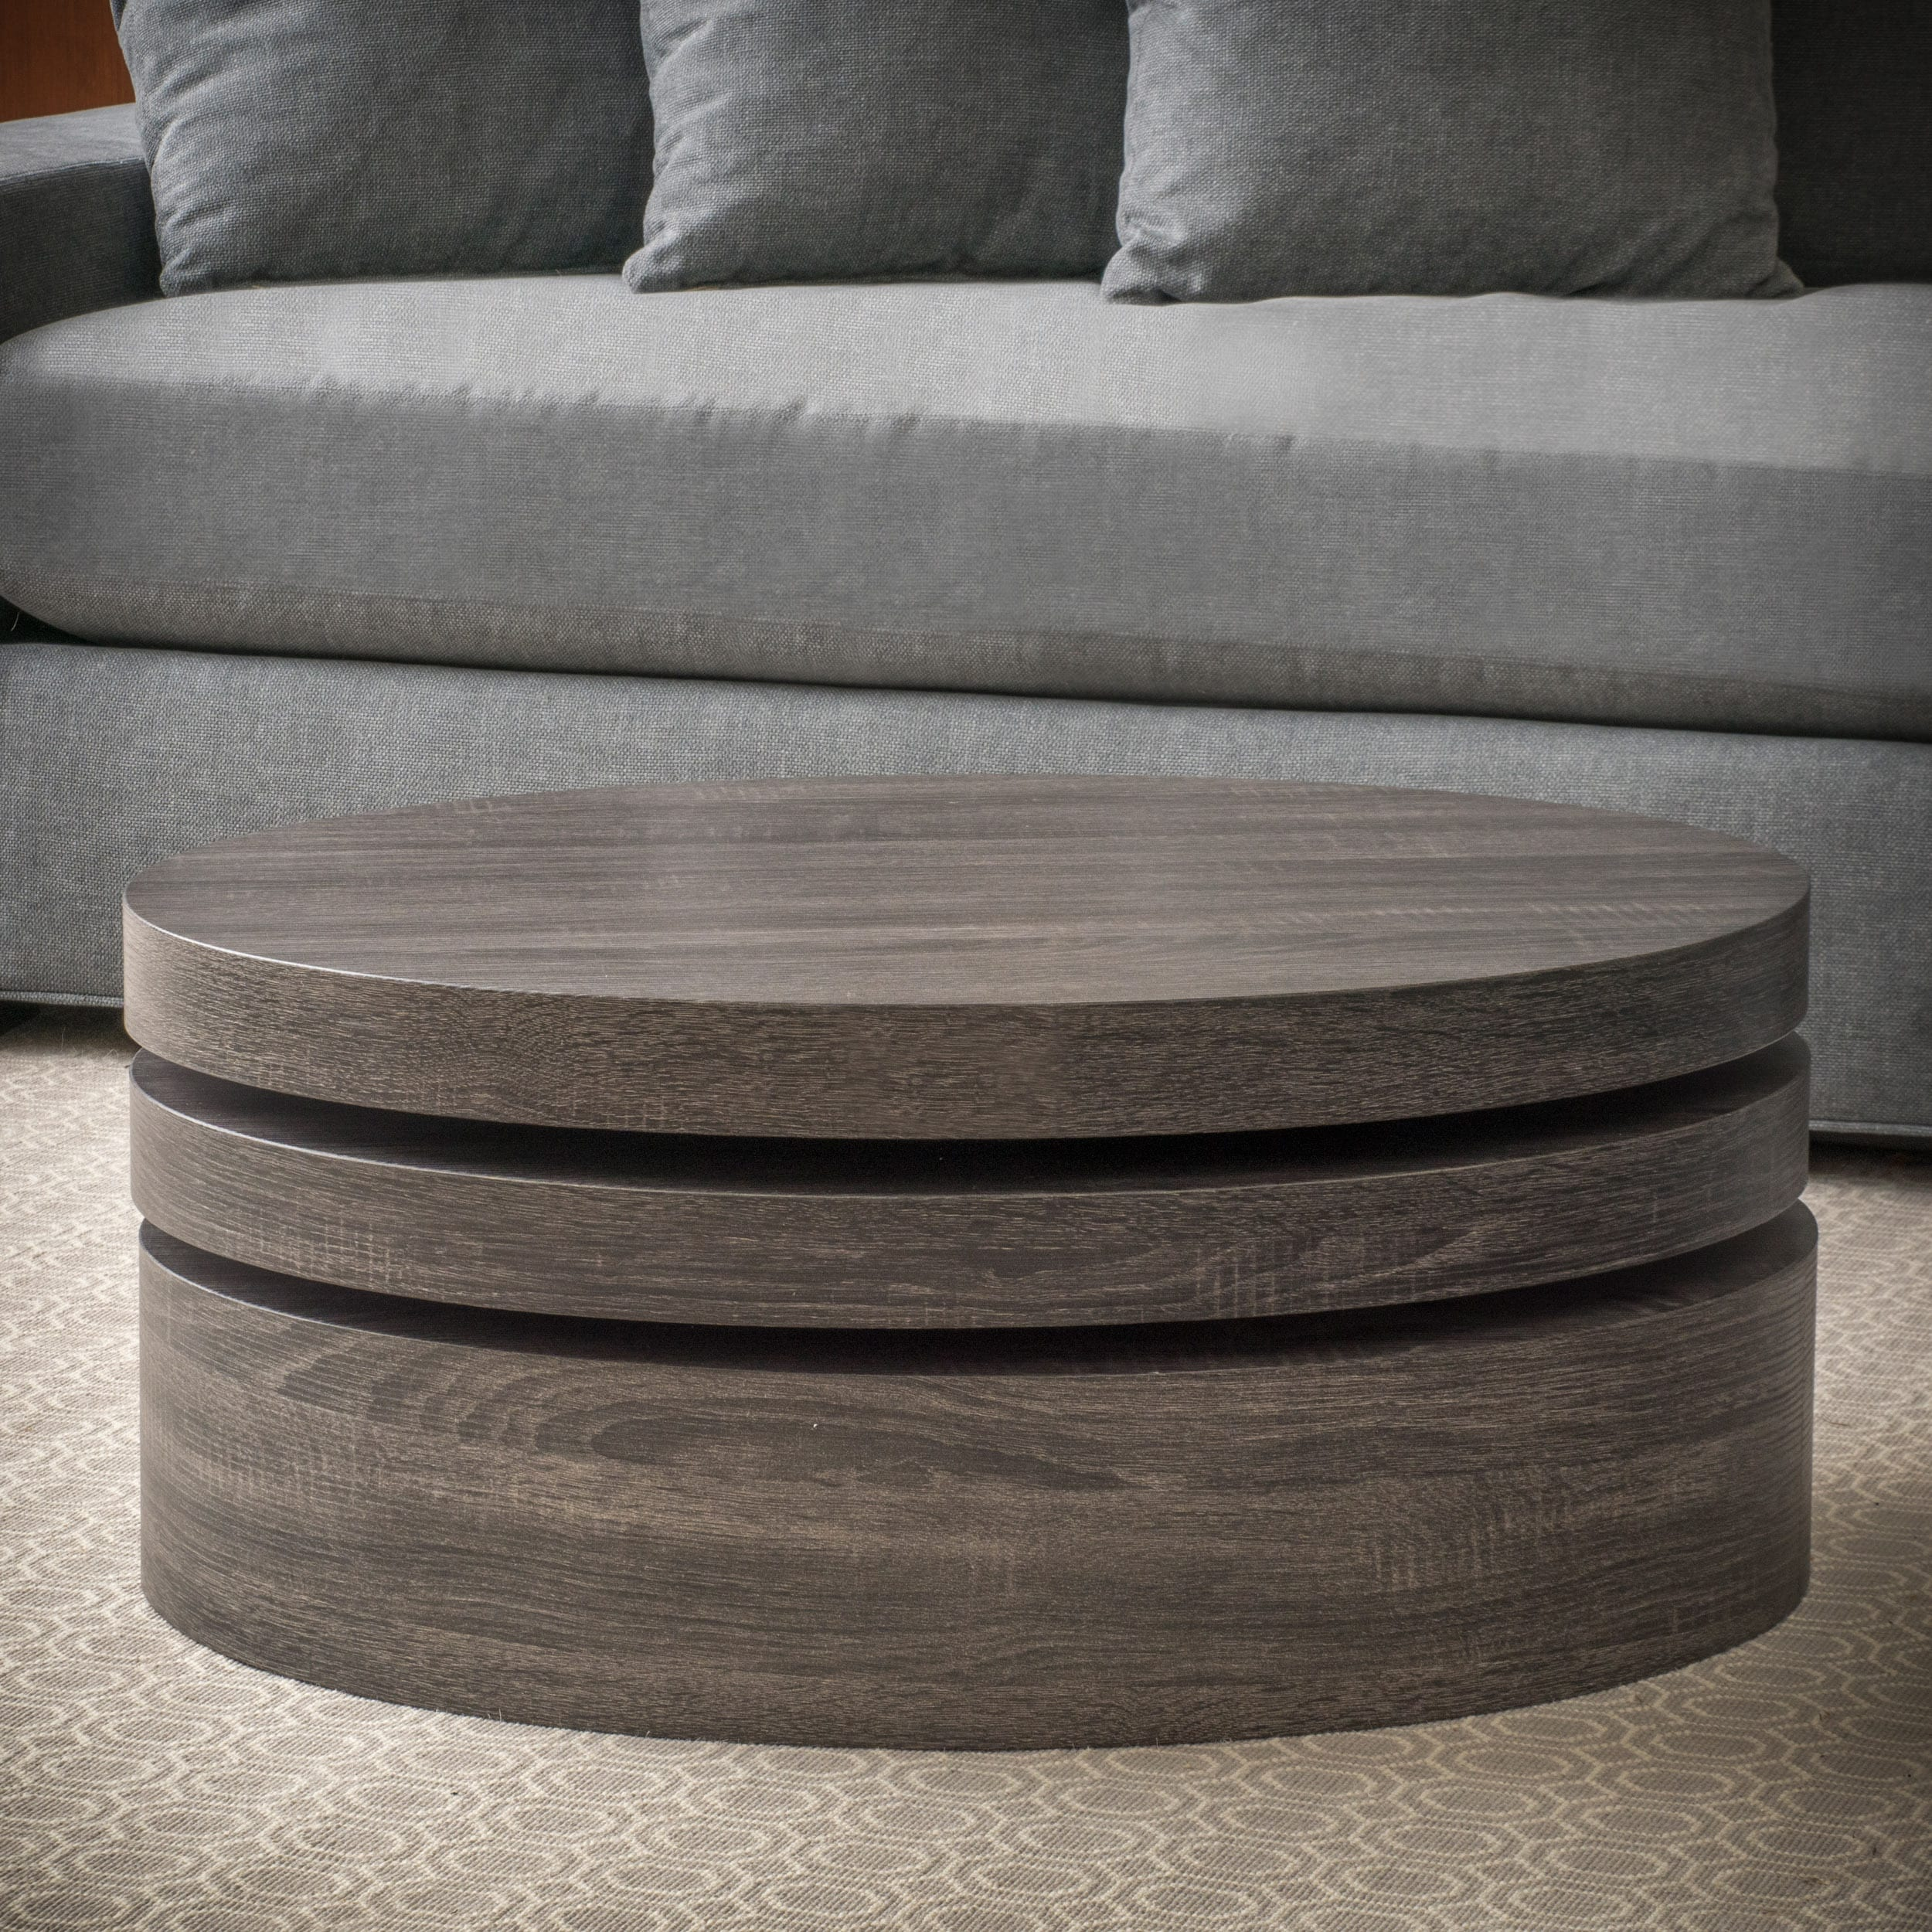 Carson Oval Mod Rotating Wood Coffee Table By Christopher Knight Home On Free Shipping Today 10546675